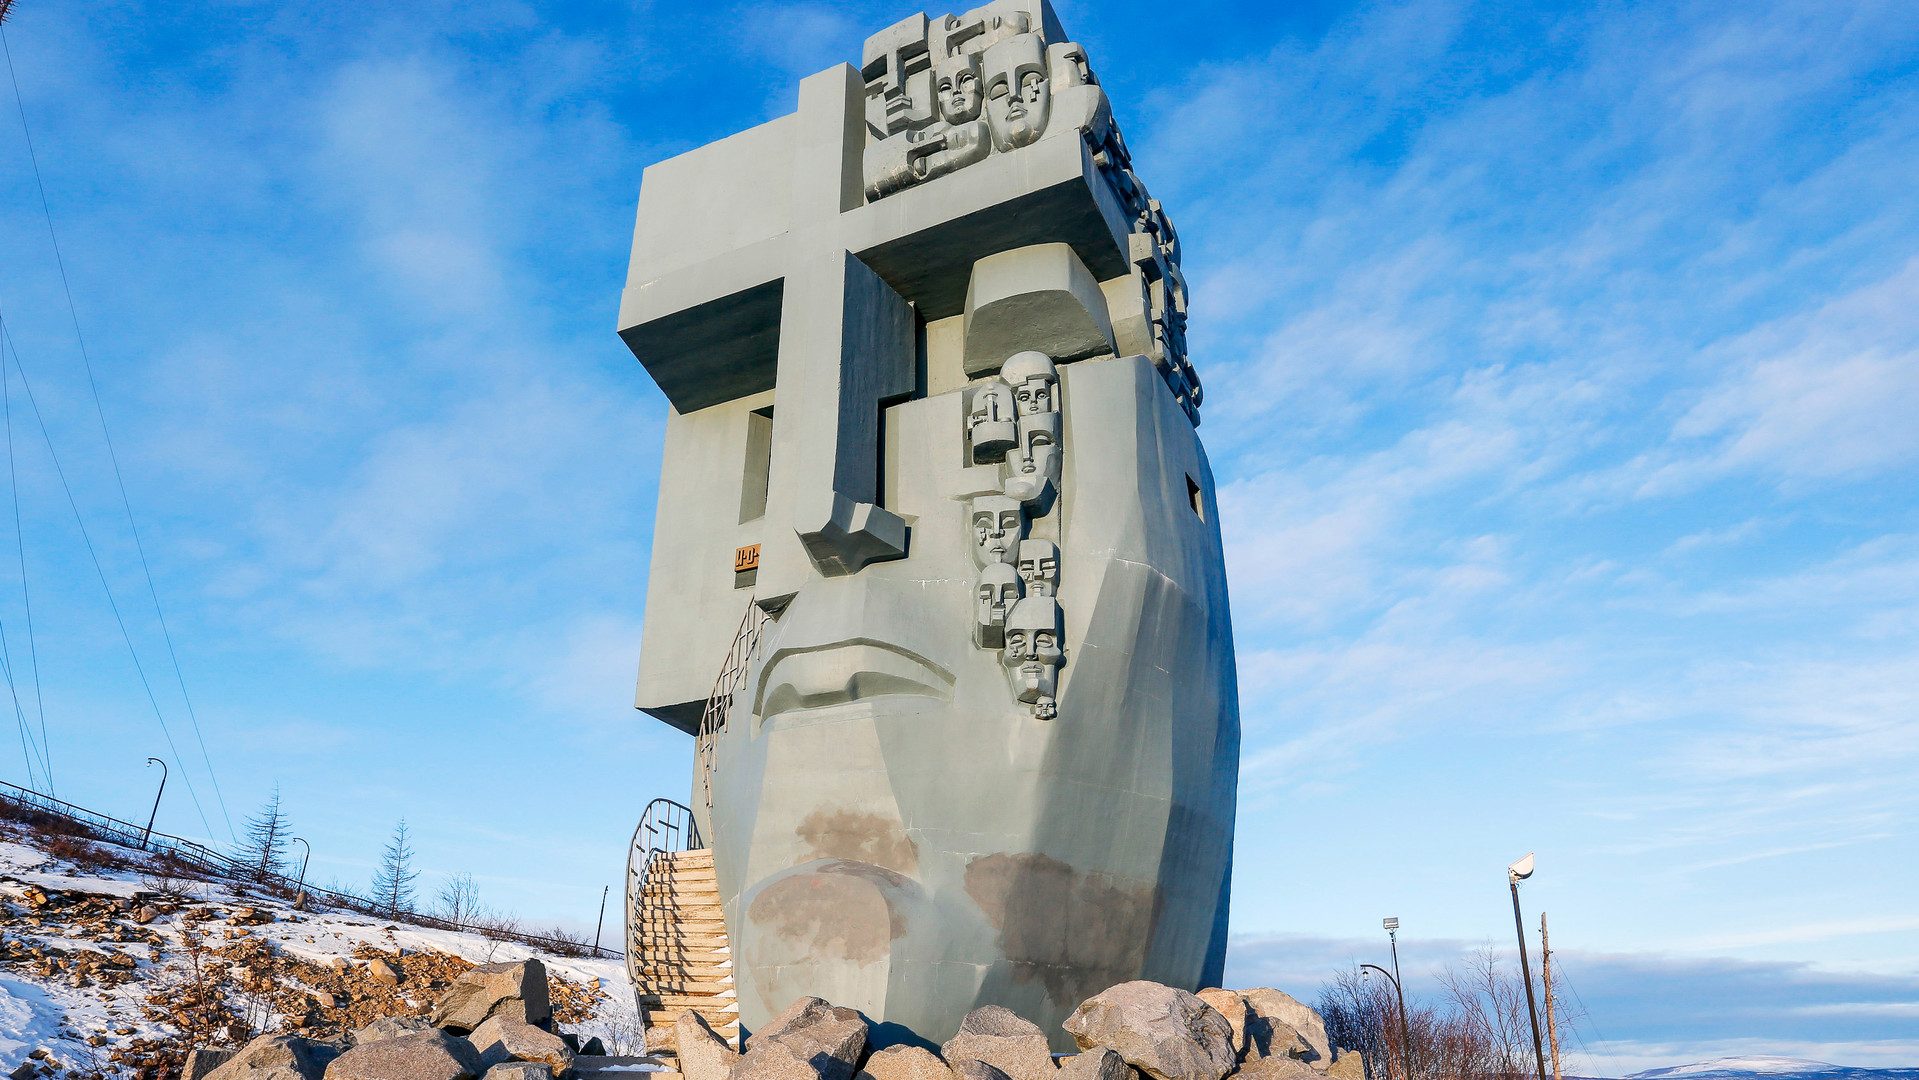 The Mask of Sorrow memorial in Magadan commemorating victims of political repression.